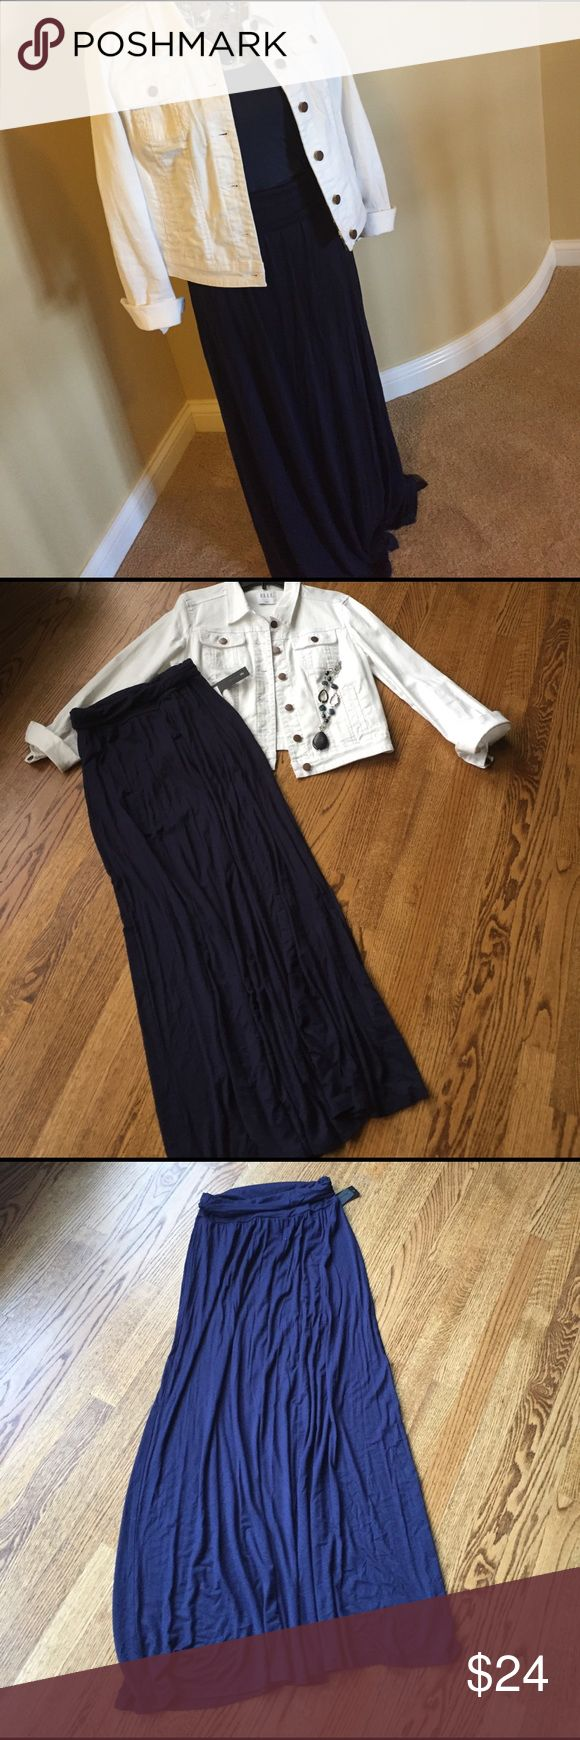 NWT Navy Maxi skirt NWT Navy maxi skirt size medium by AB Studio. AB Studio Skirts Maxi